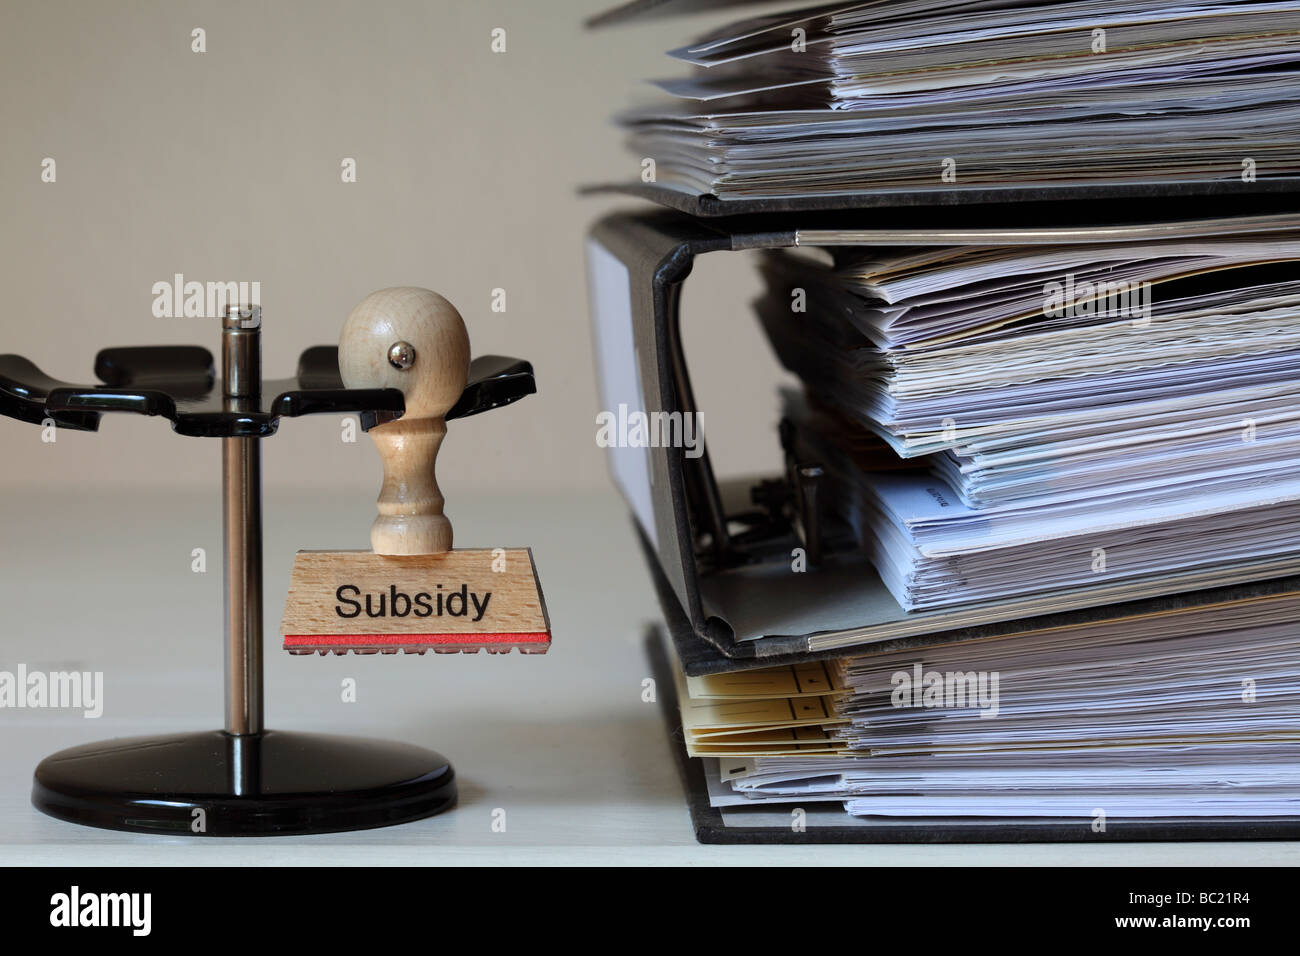 Stamp with inscription Subsidy next to a pile of files - Stock Image